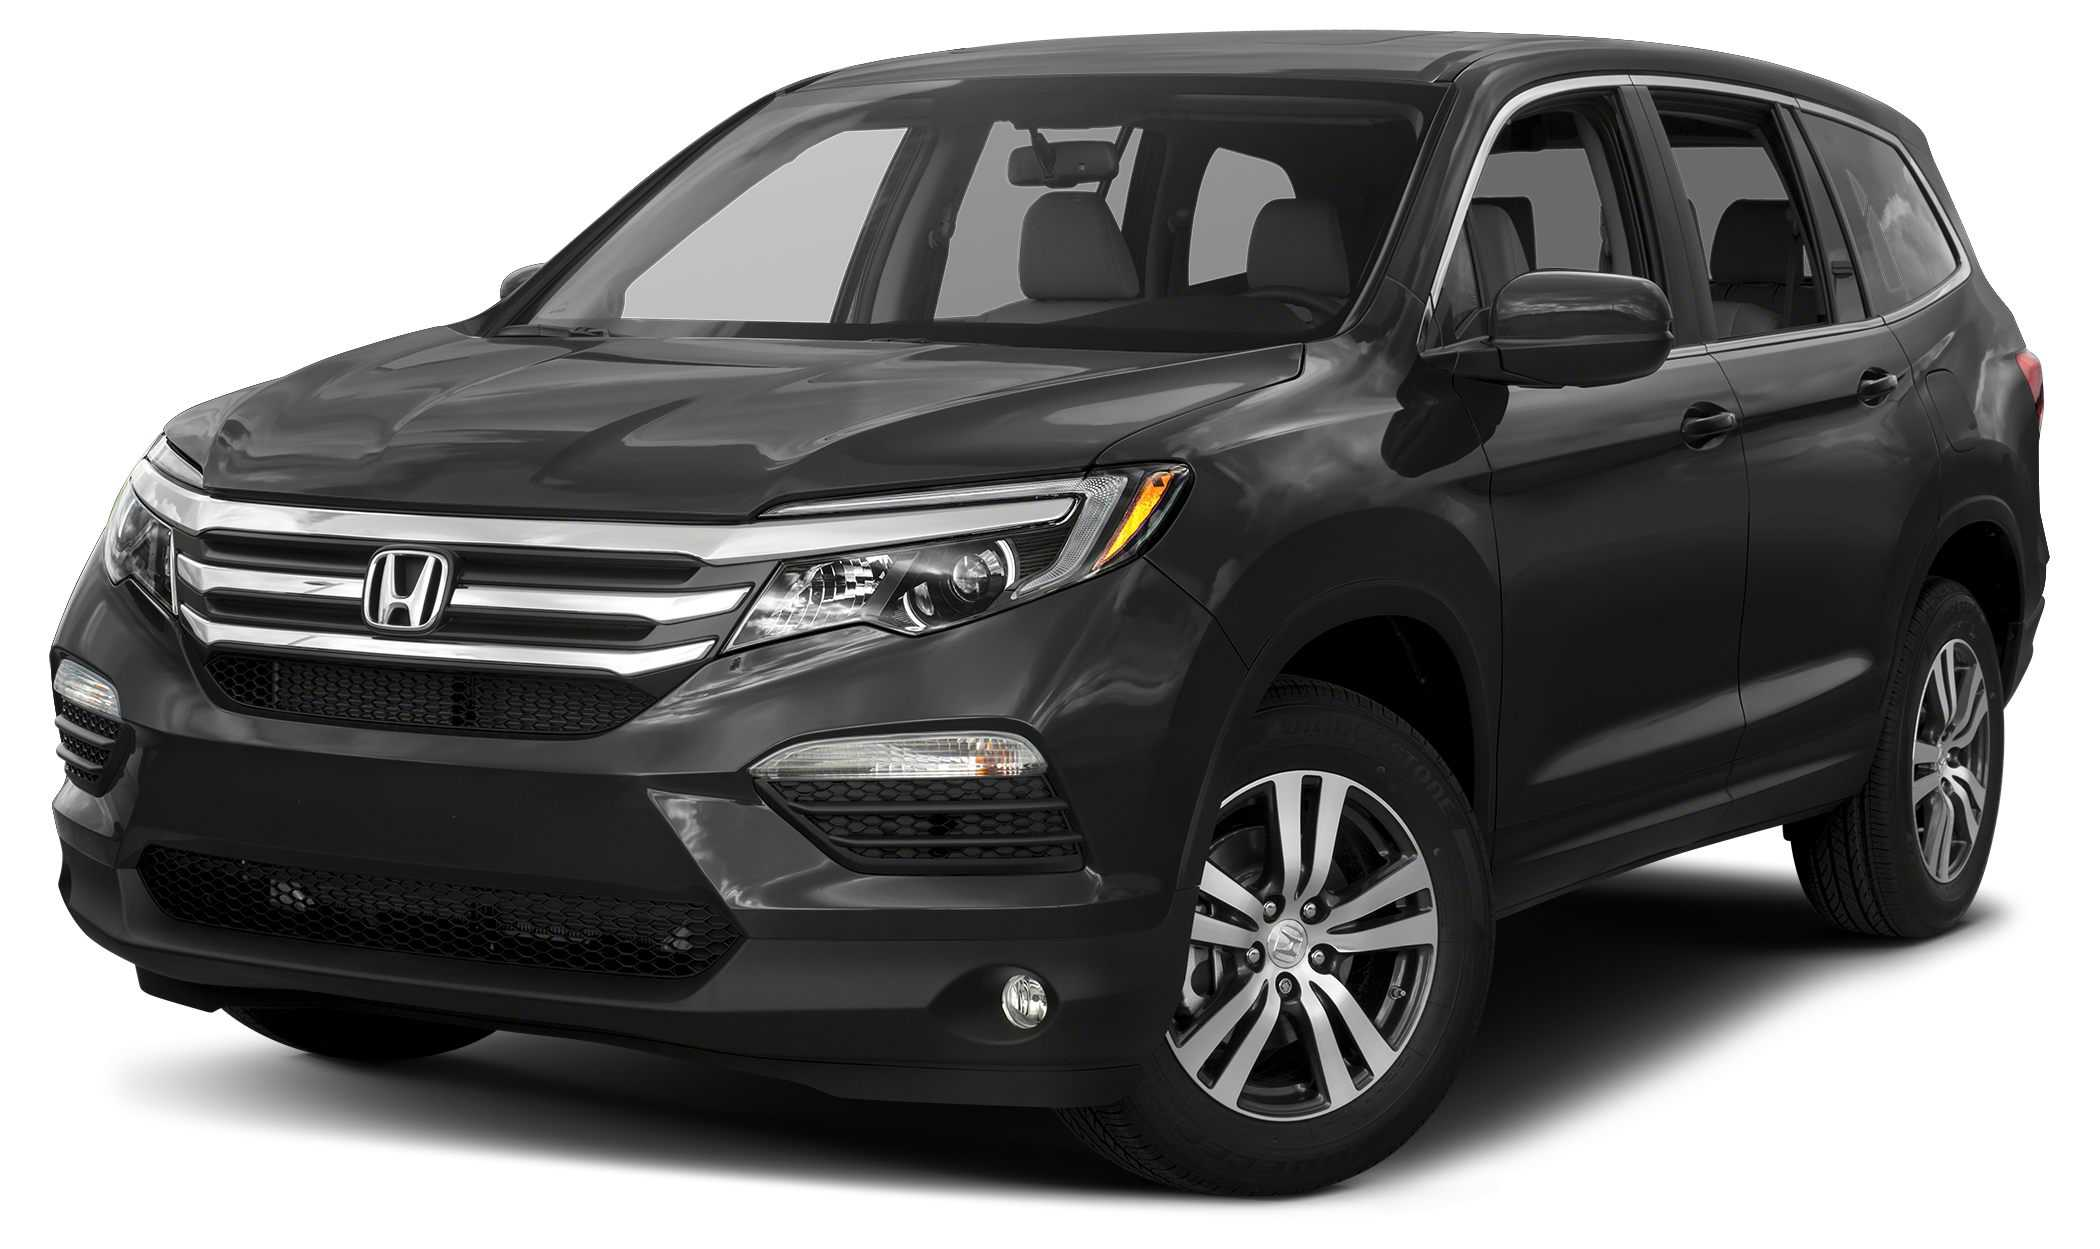 2017 Honda Pilot For Sale In Waukesha Wi 5fnyf6h5xhb036652